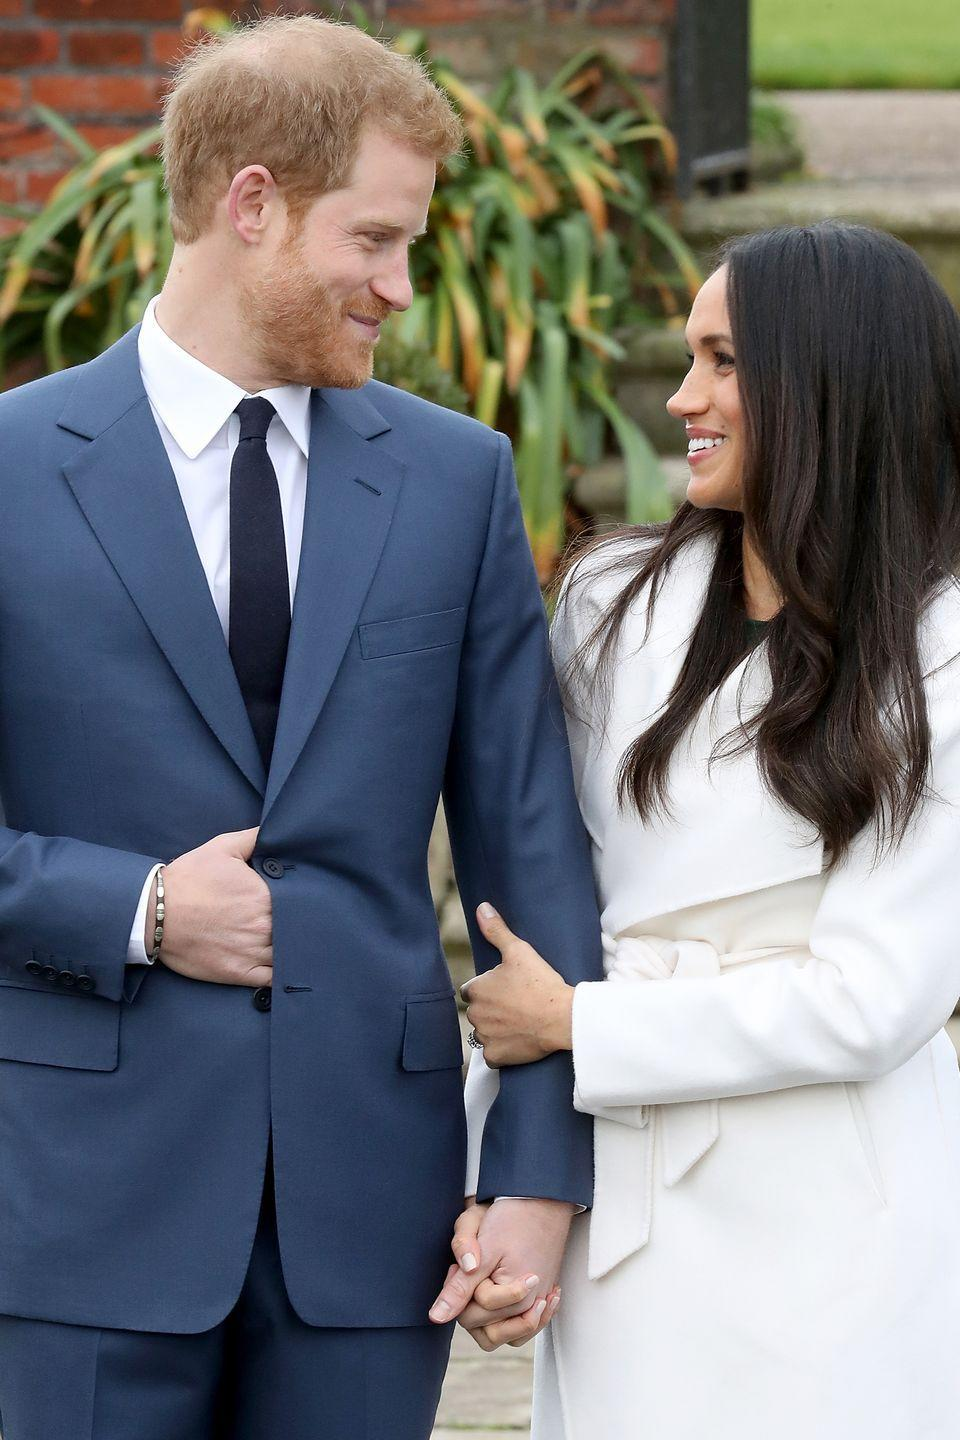 <p>With no other public appearances until late November, Prince Harry and Markle were next photographed together during an official photo-call to announce their engagement. In front of the Sunken Garden at Kensington Palace in London, the bride-to-be held tight to her fiancé's arm and flashed a smile.</p>